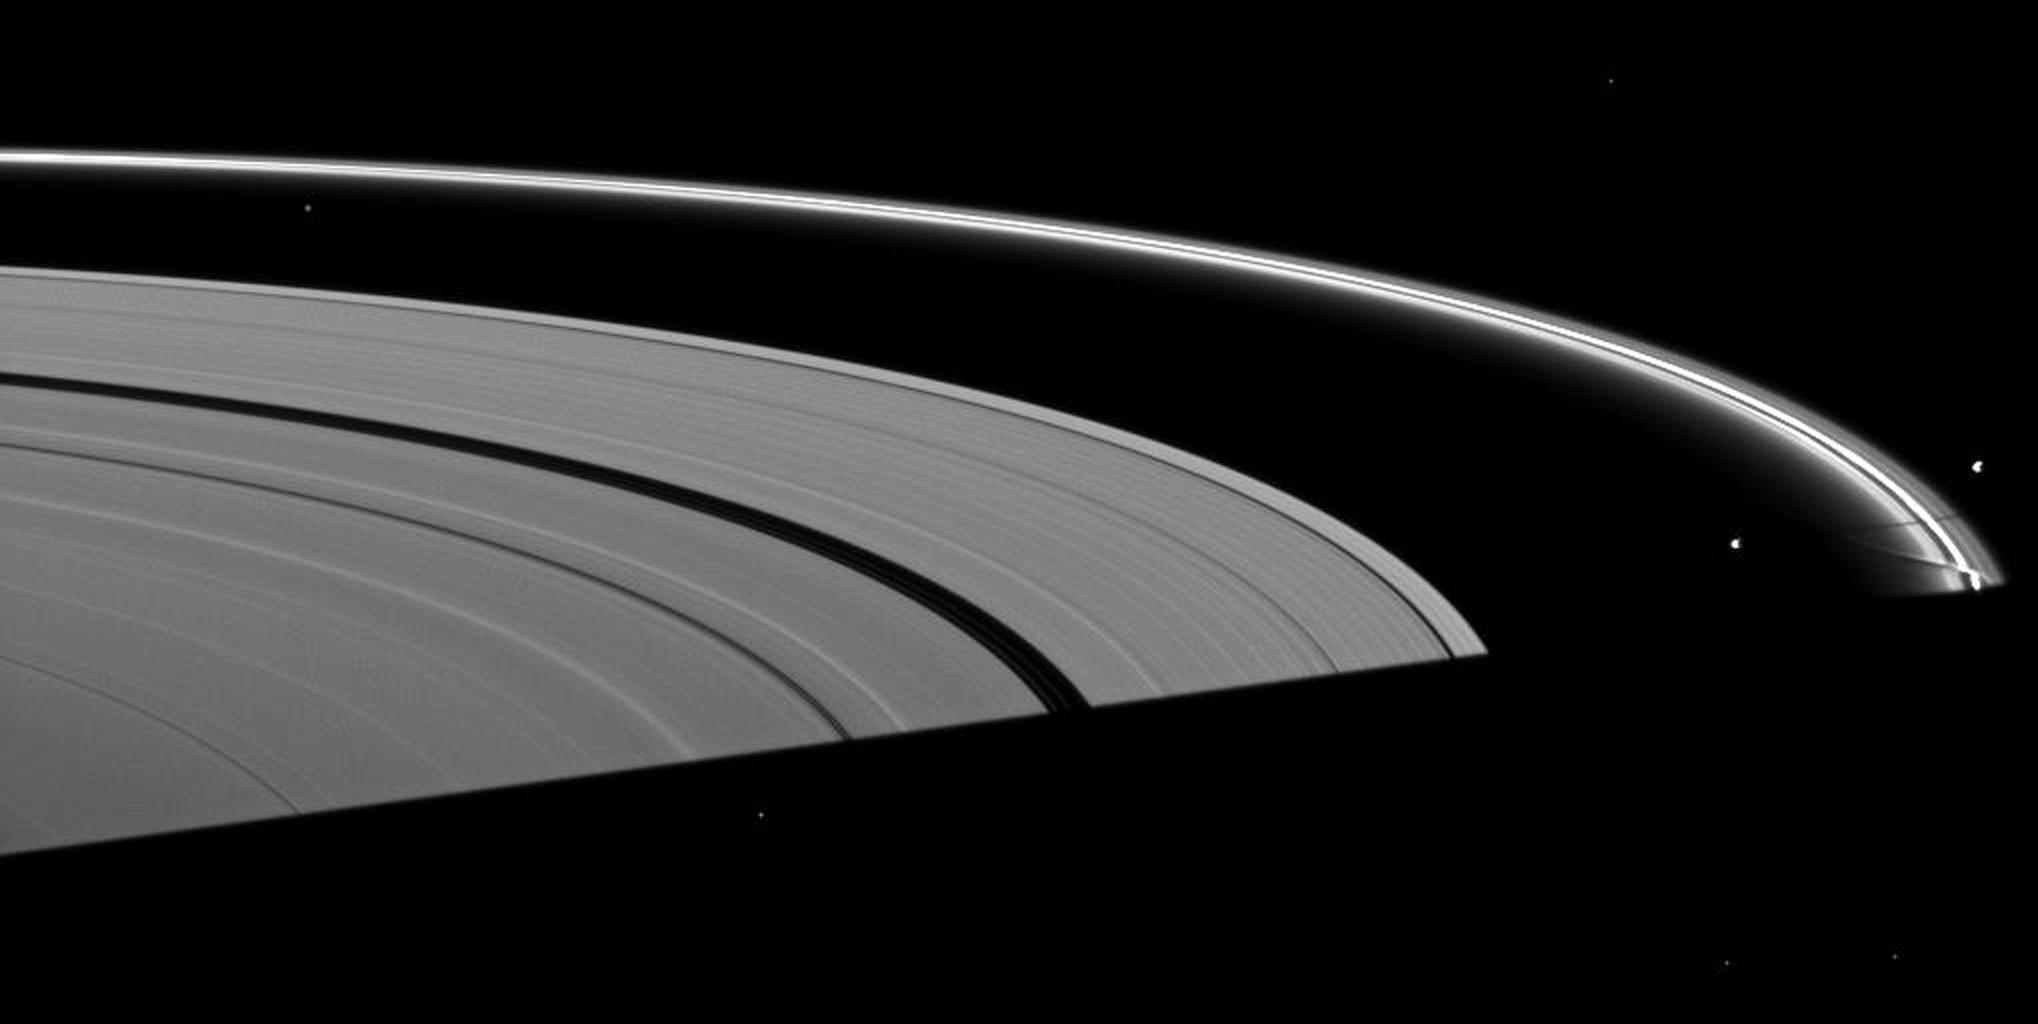 Saturn's moon Prometheus casts a shadow near a streamer-channel created by the moon in the thin F ring in this image taken by NASA's Cassini spacecraft about a month after the planet's August 2009 equinox.